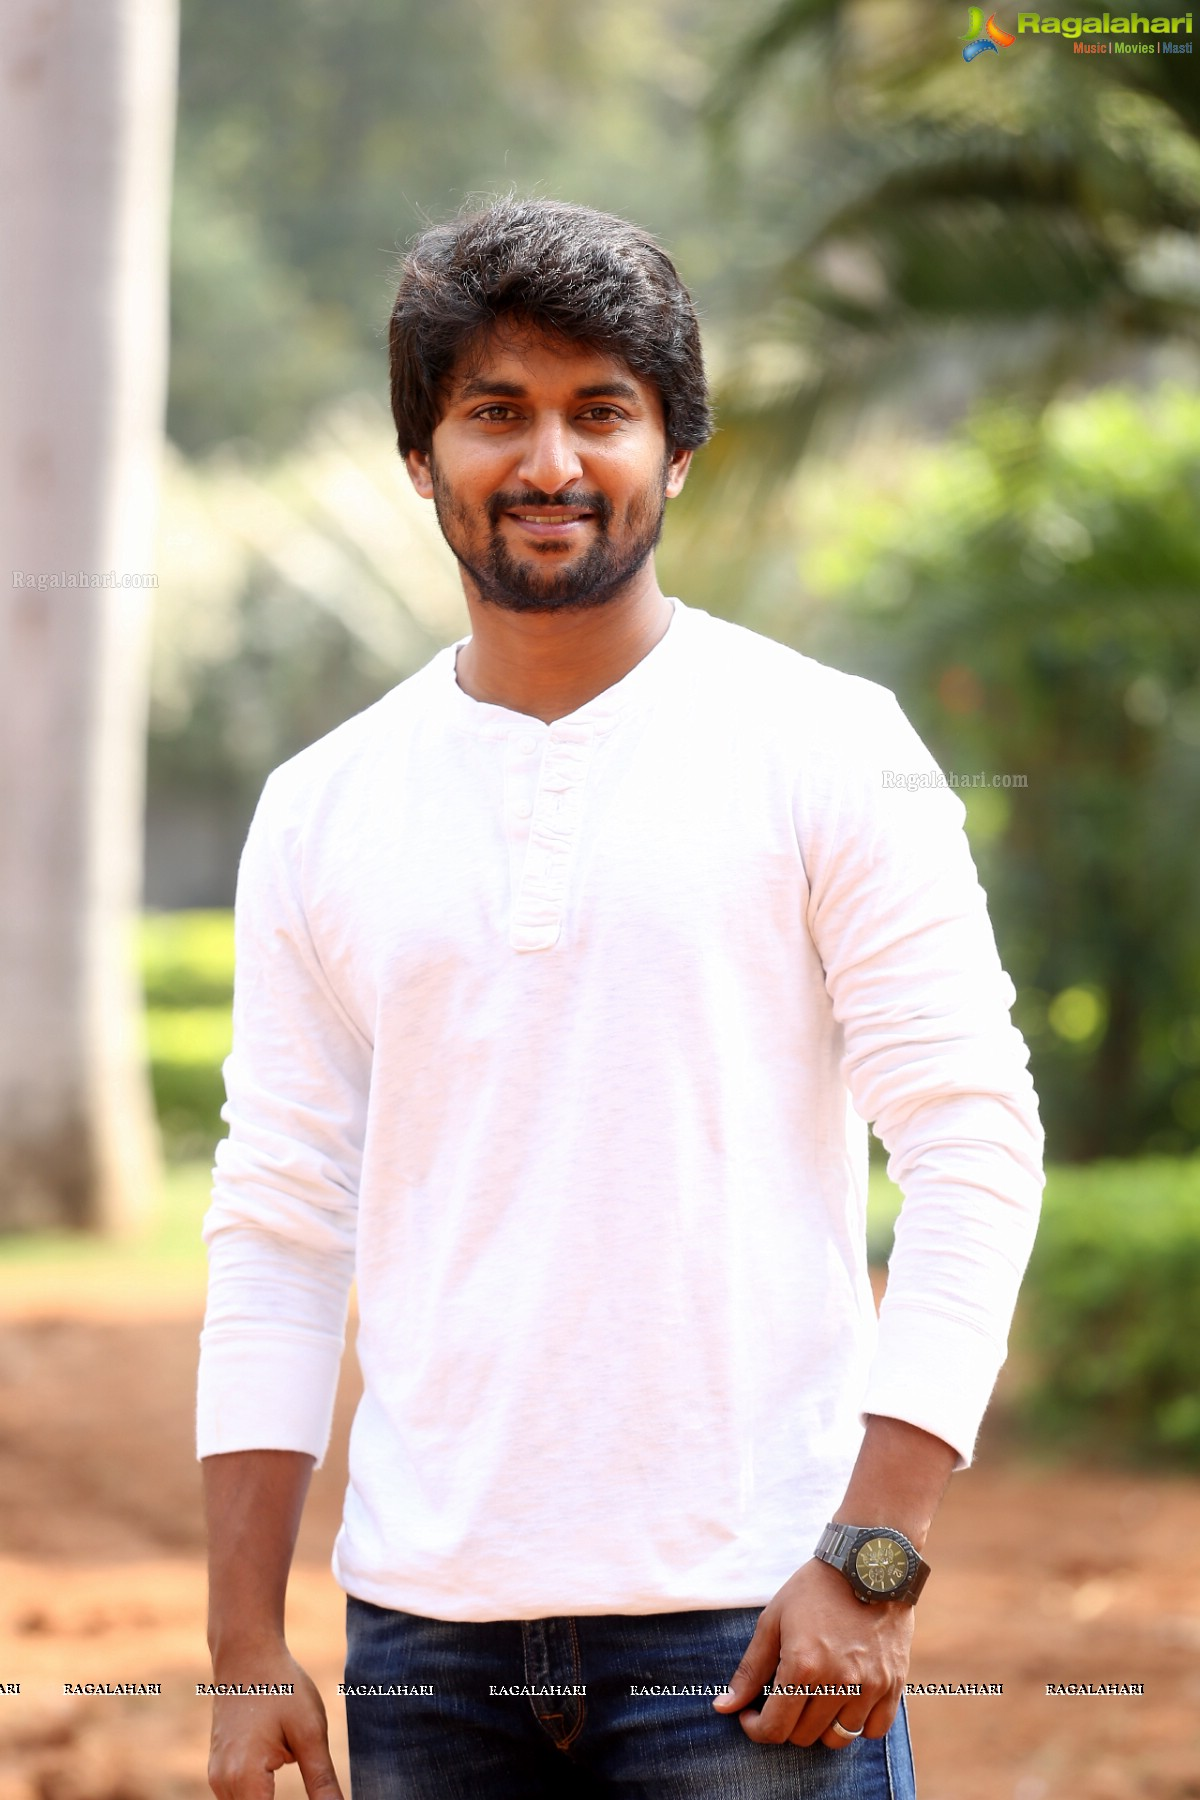 Telugu Actor Nani Wallpapers Fitrinis Wallpaper